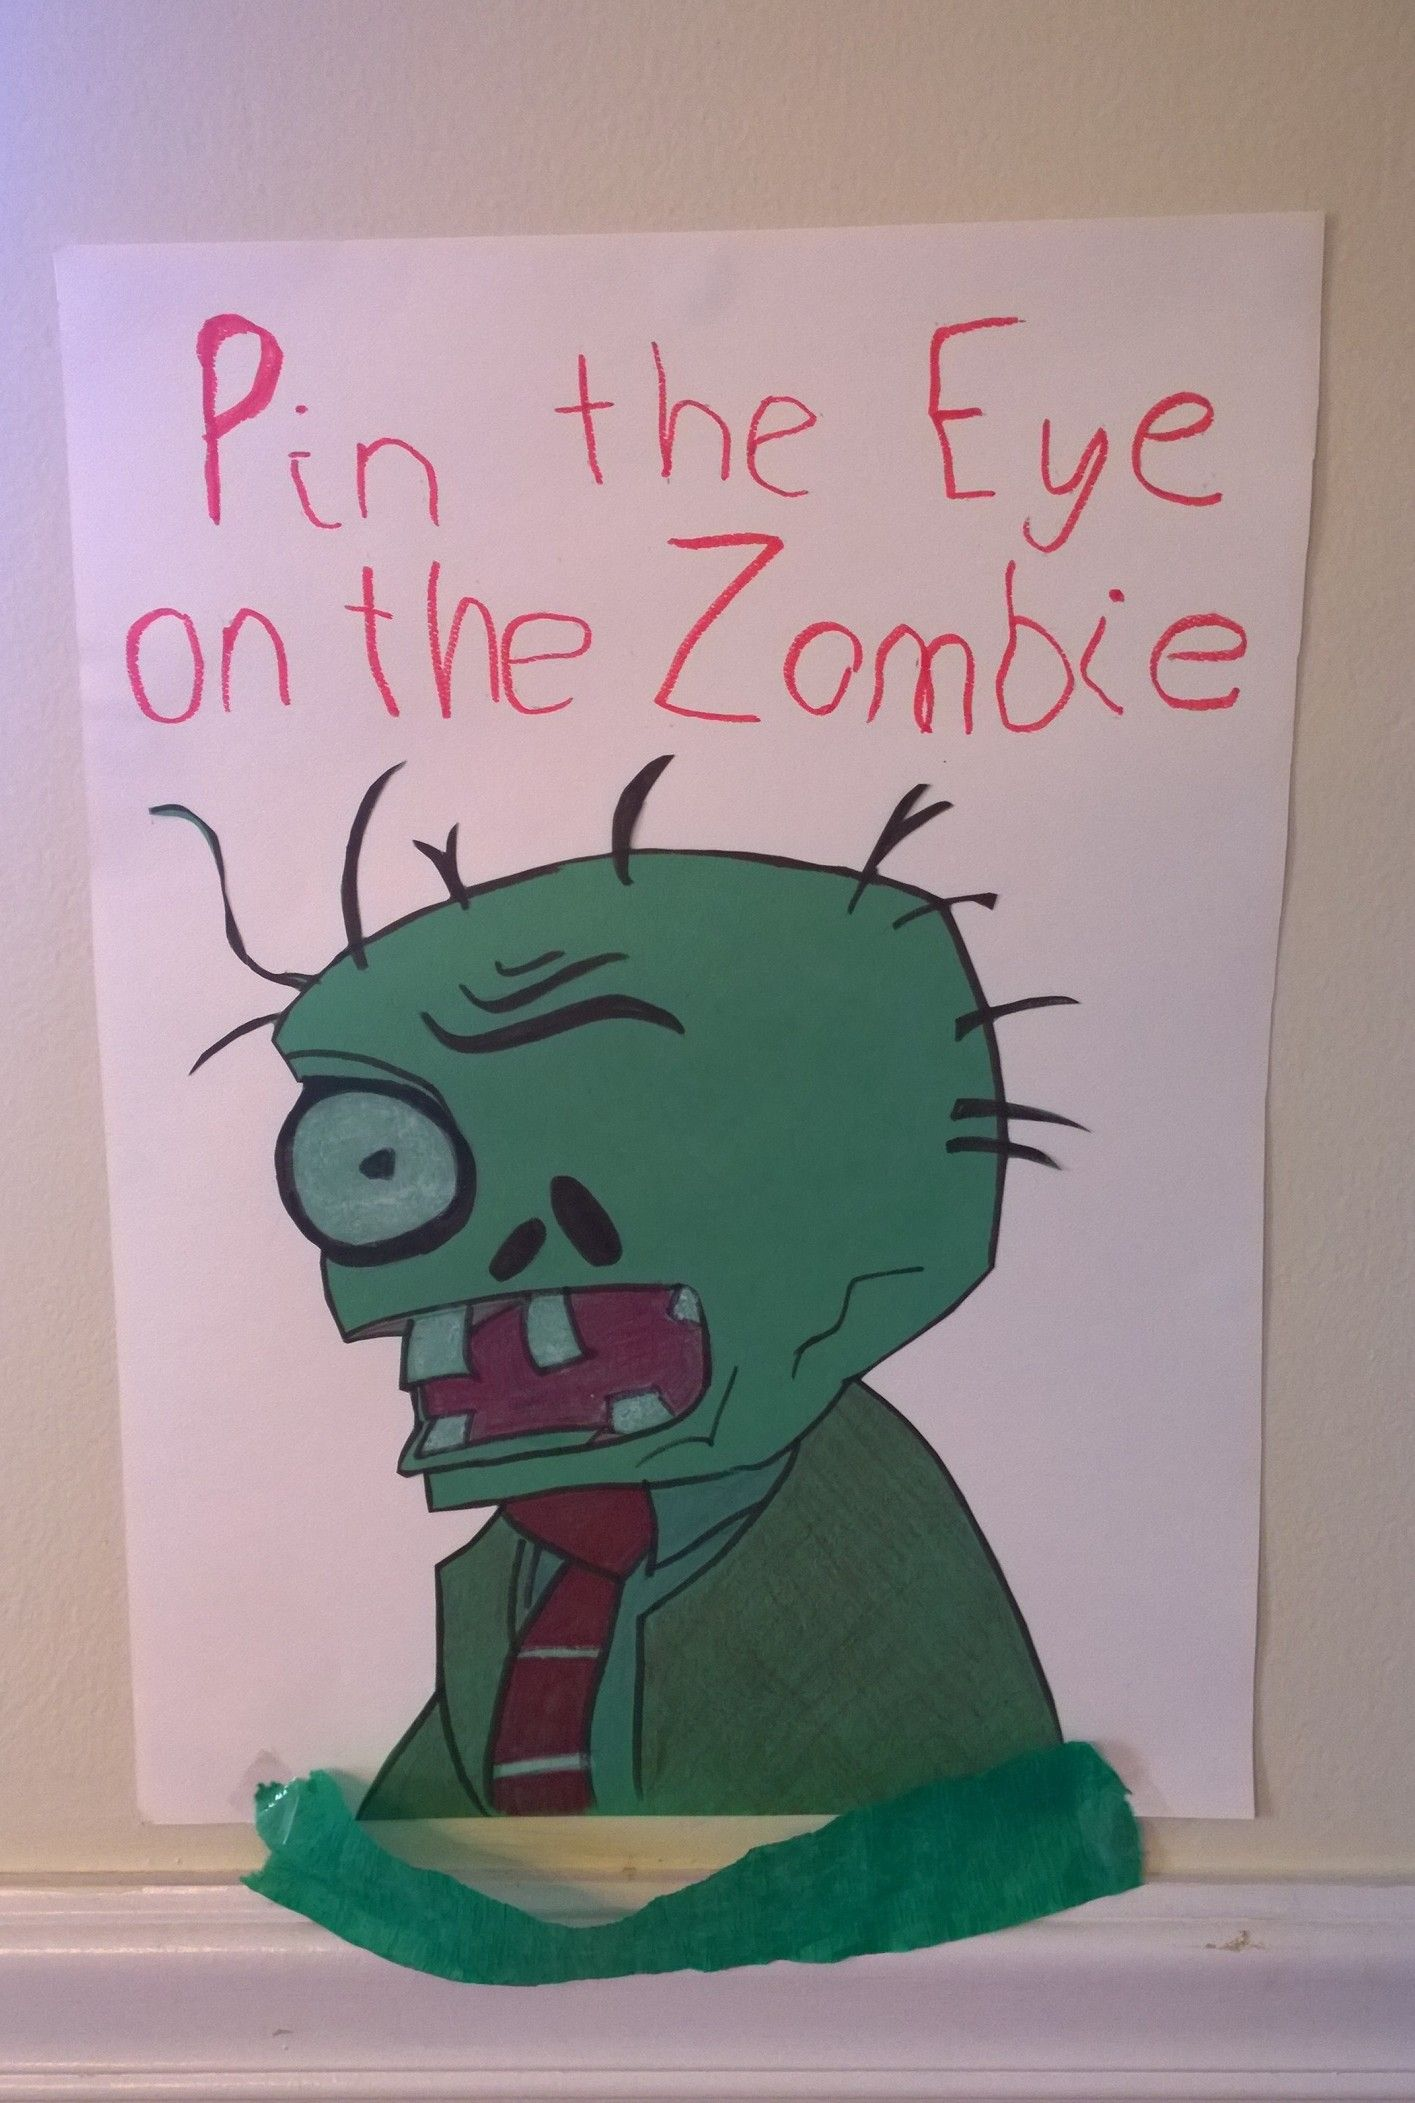 free printable funny0th birthday invitations%0A Pin the Eye on the Zombie  plants vs zombies party